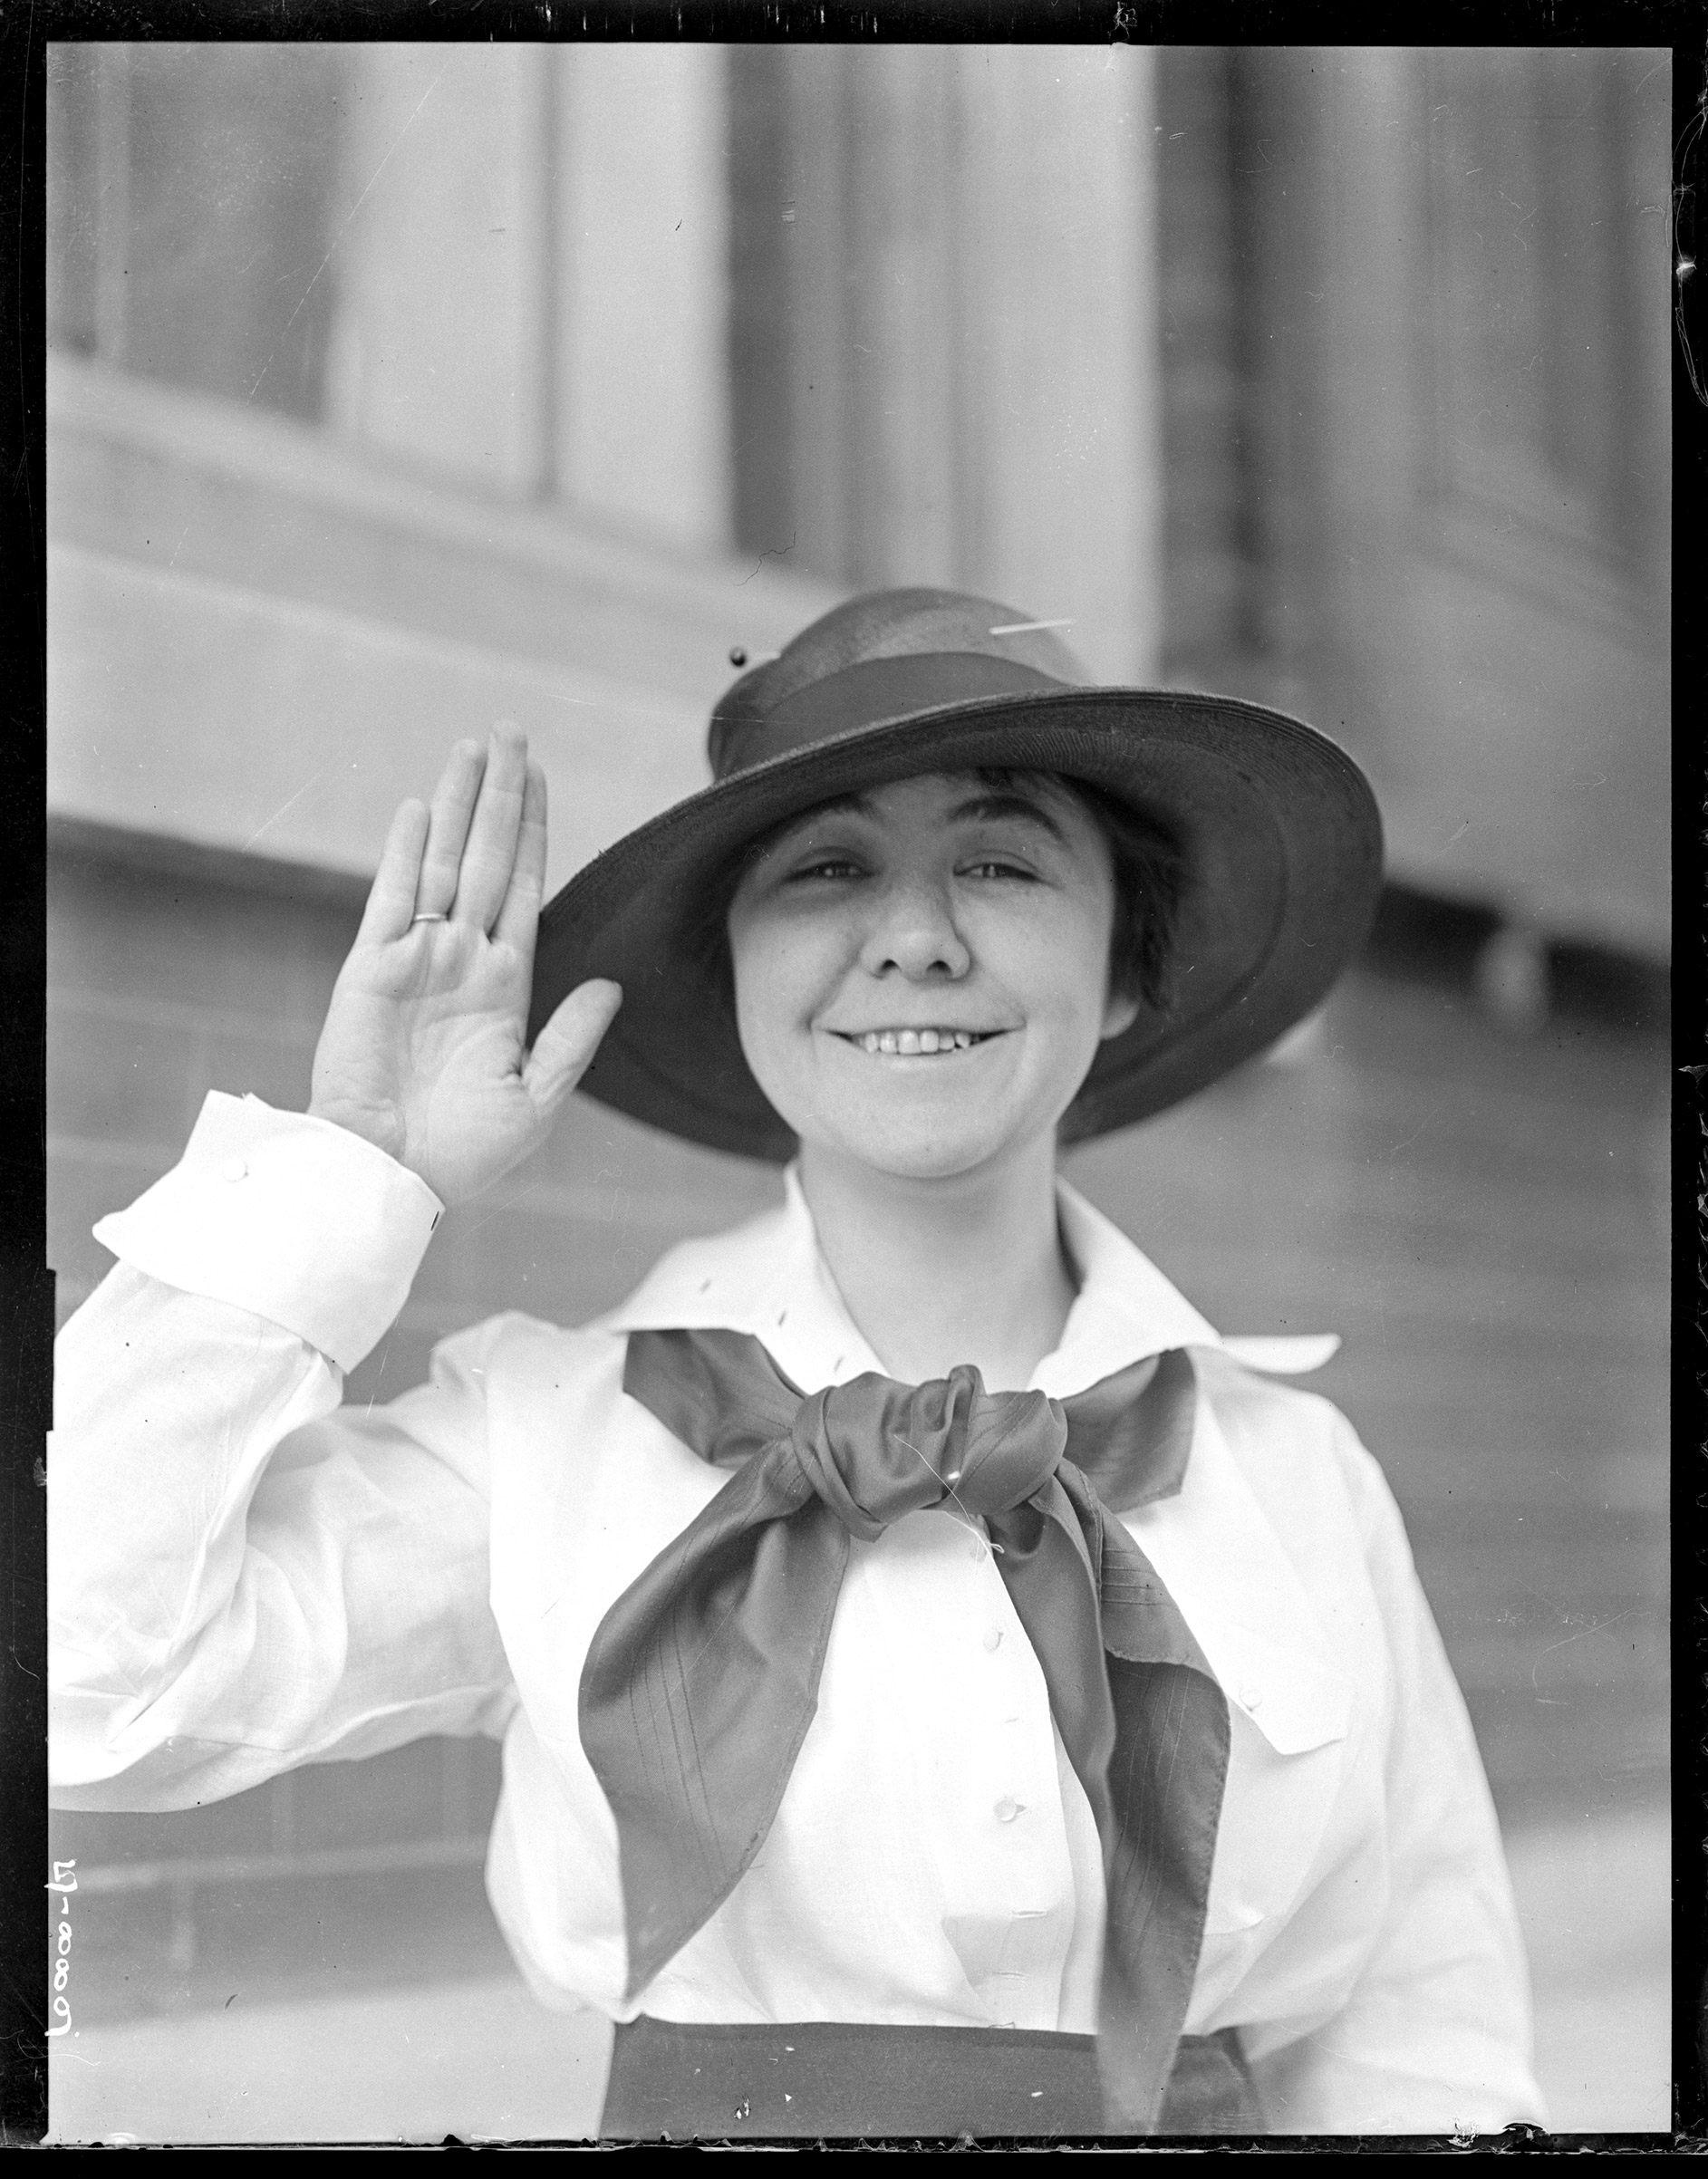 LORETTA PERFECTUS WALSH became the first woman to enlist in the U.S. Navy in 1917.